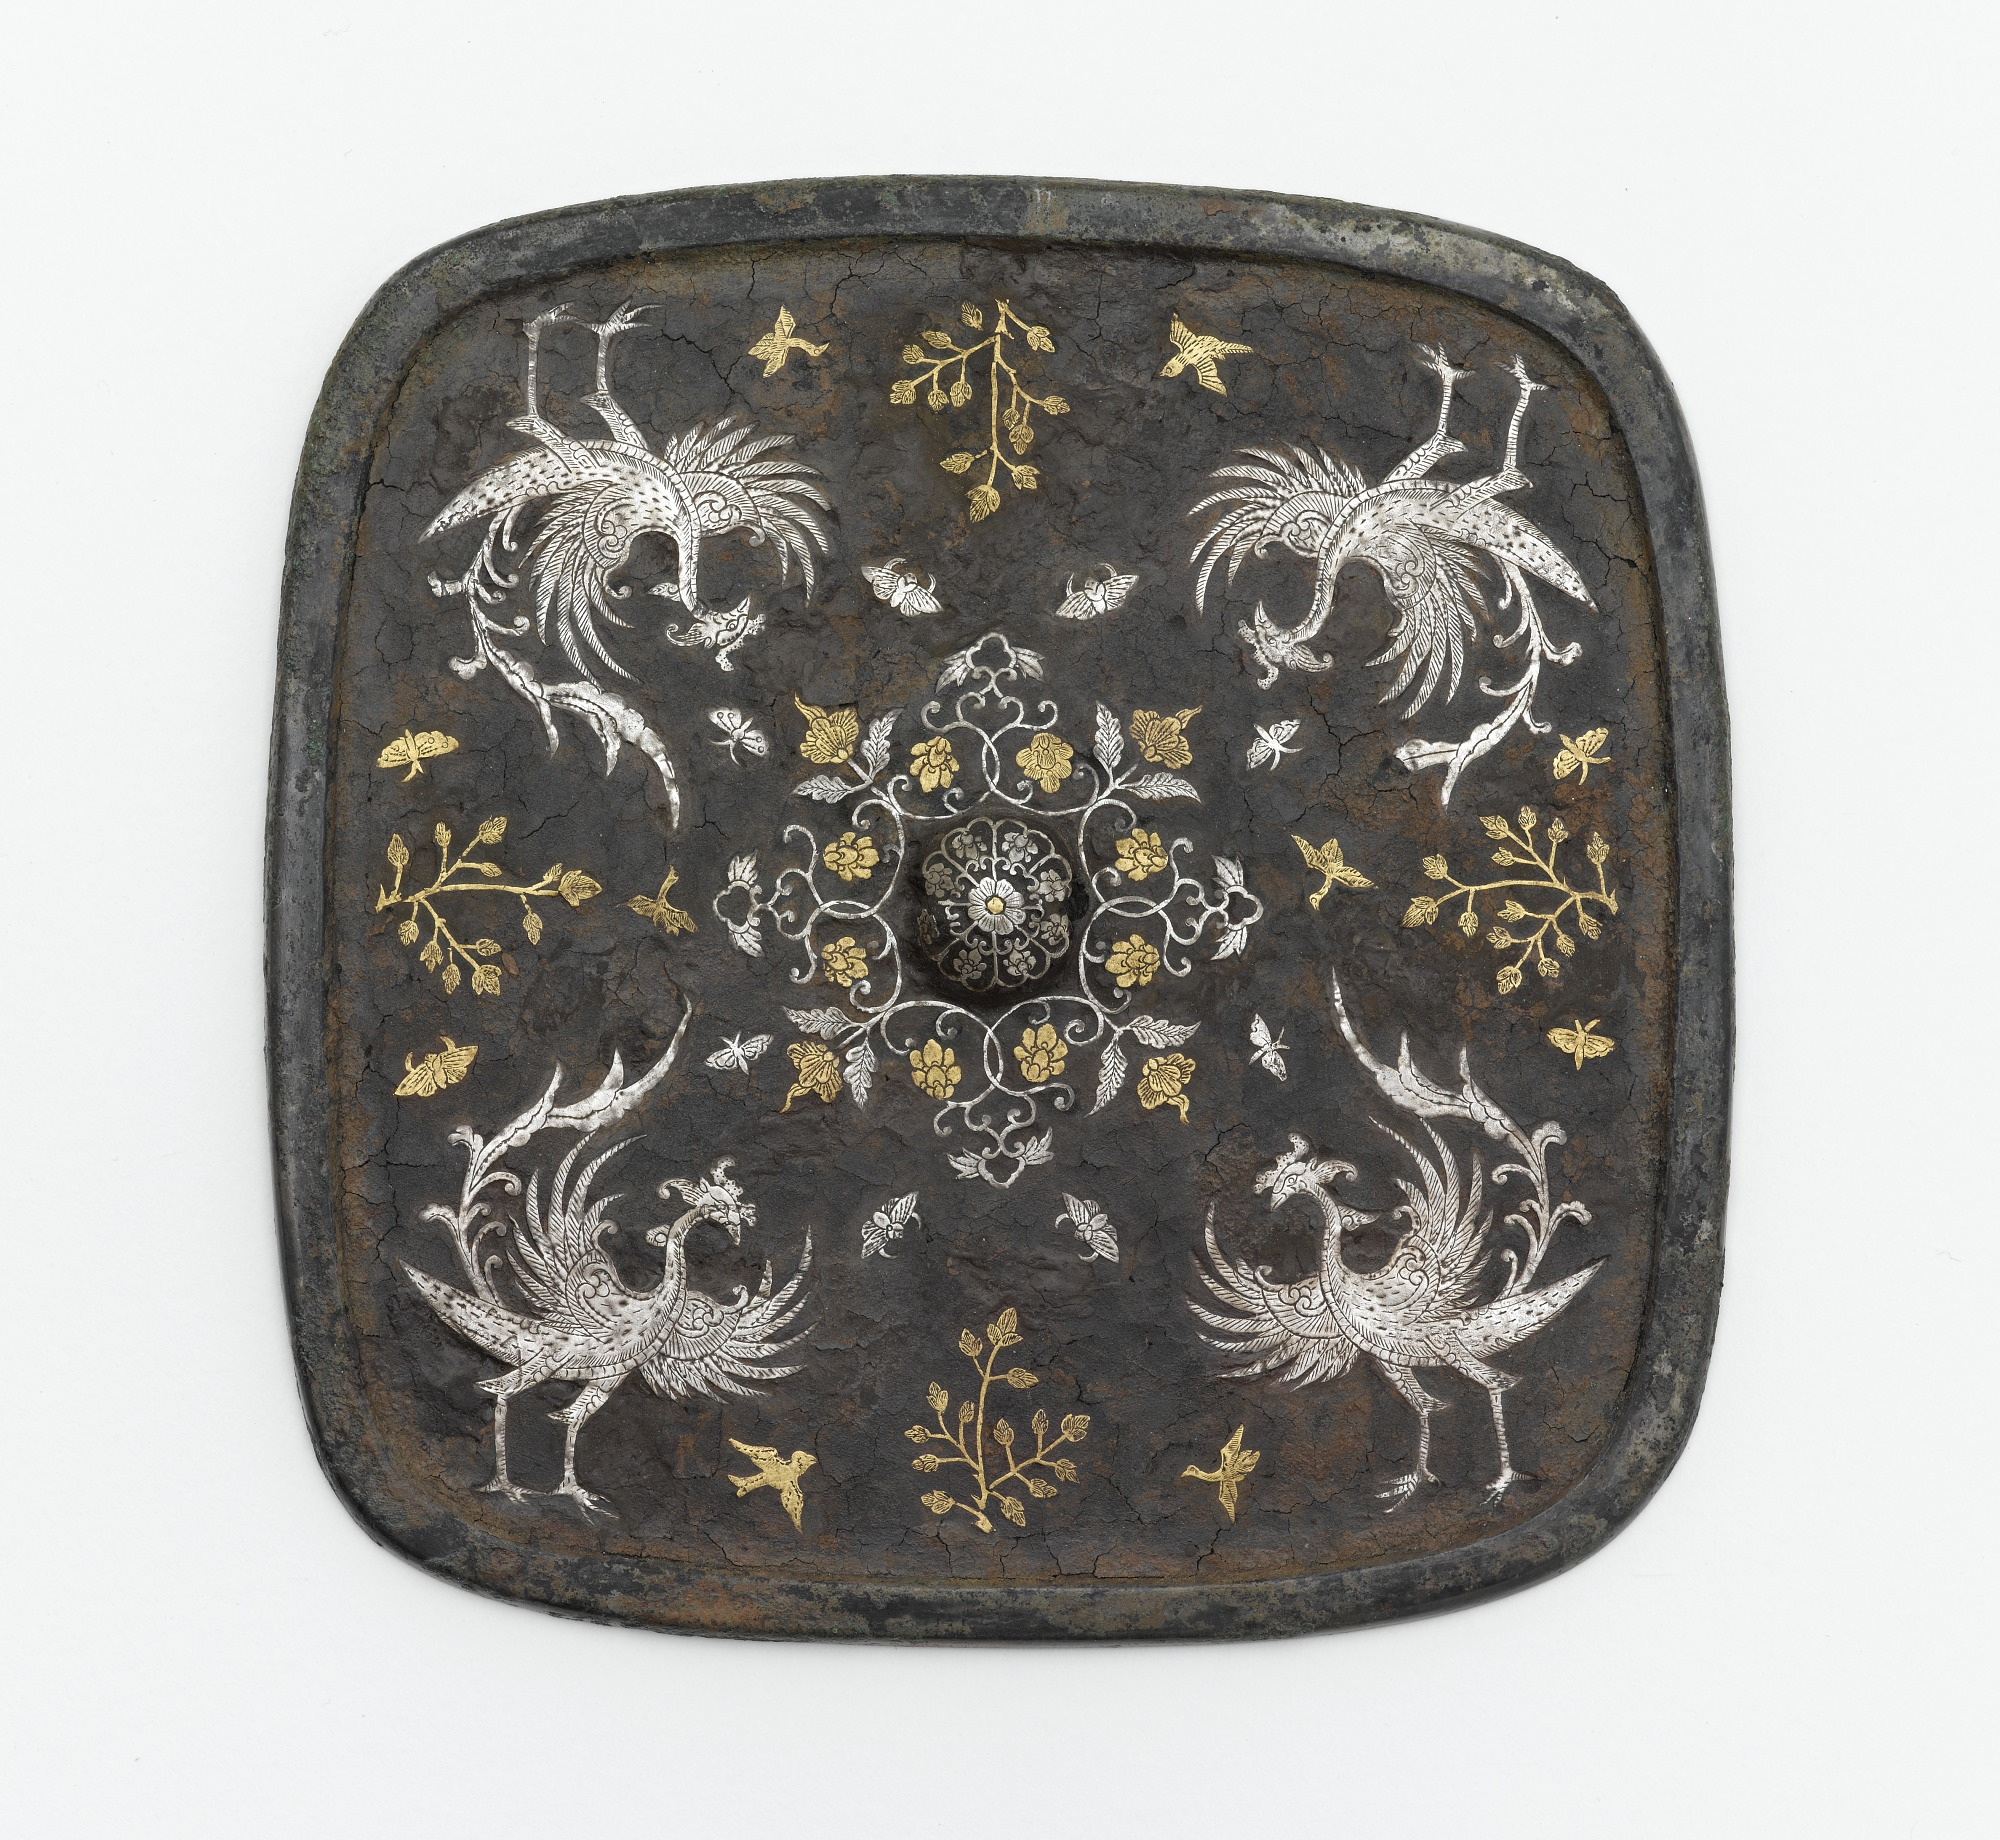 Square mirror with floral medallion, plant sprays, birds, and insects